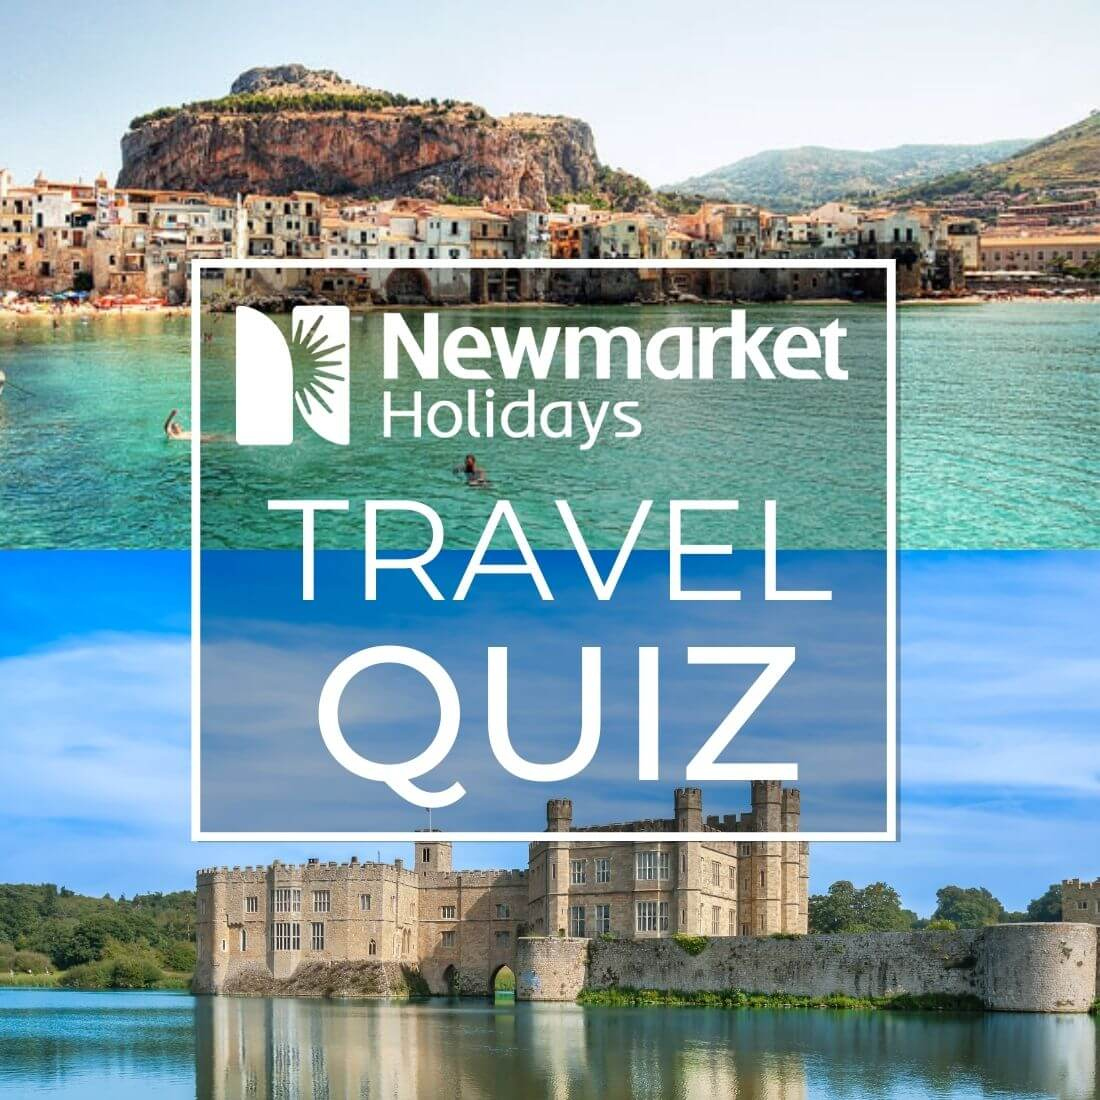 Newmarket Holidays Travel Quiz Round 20!